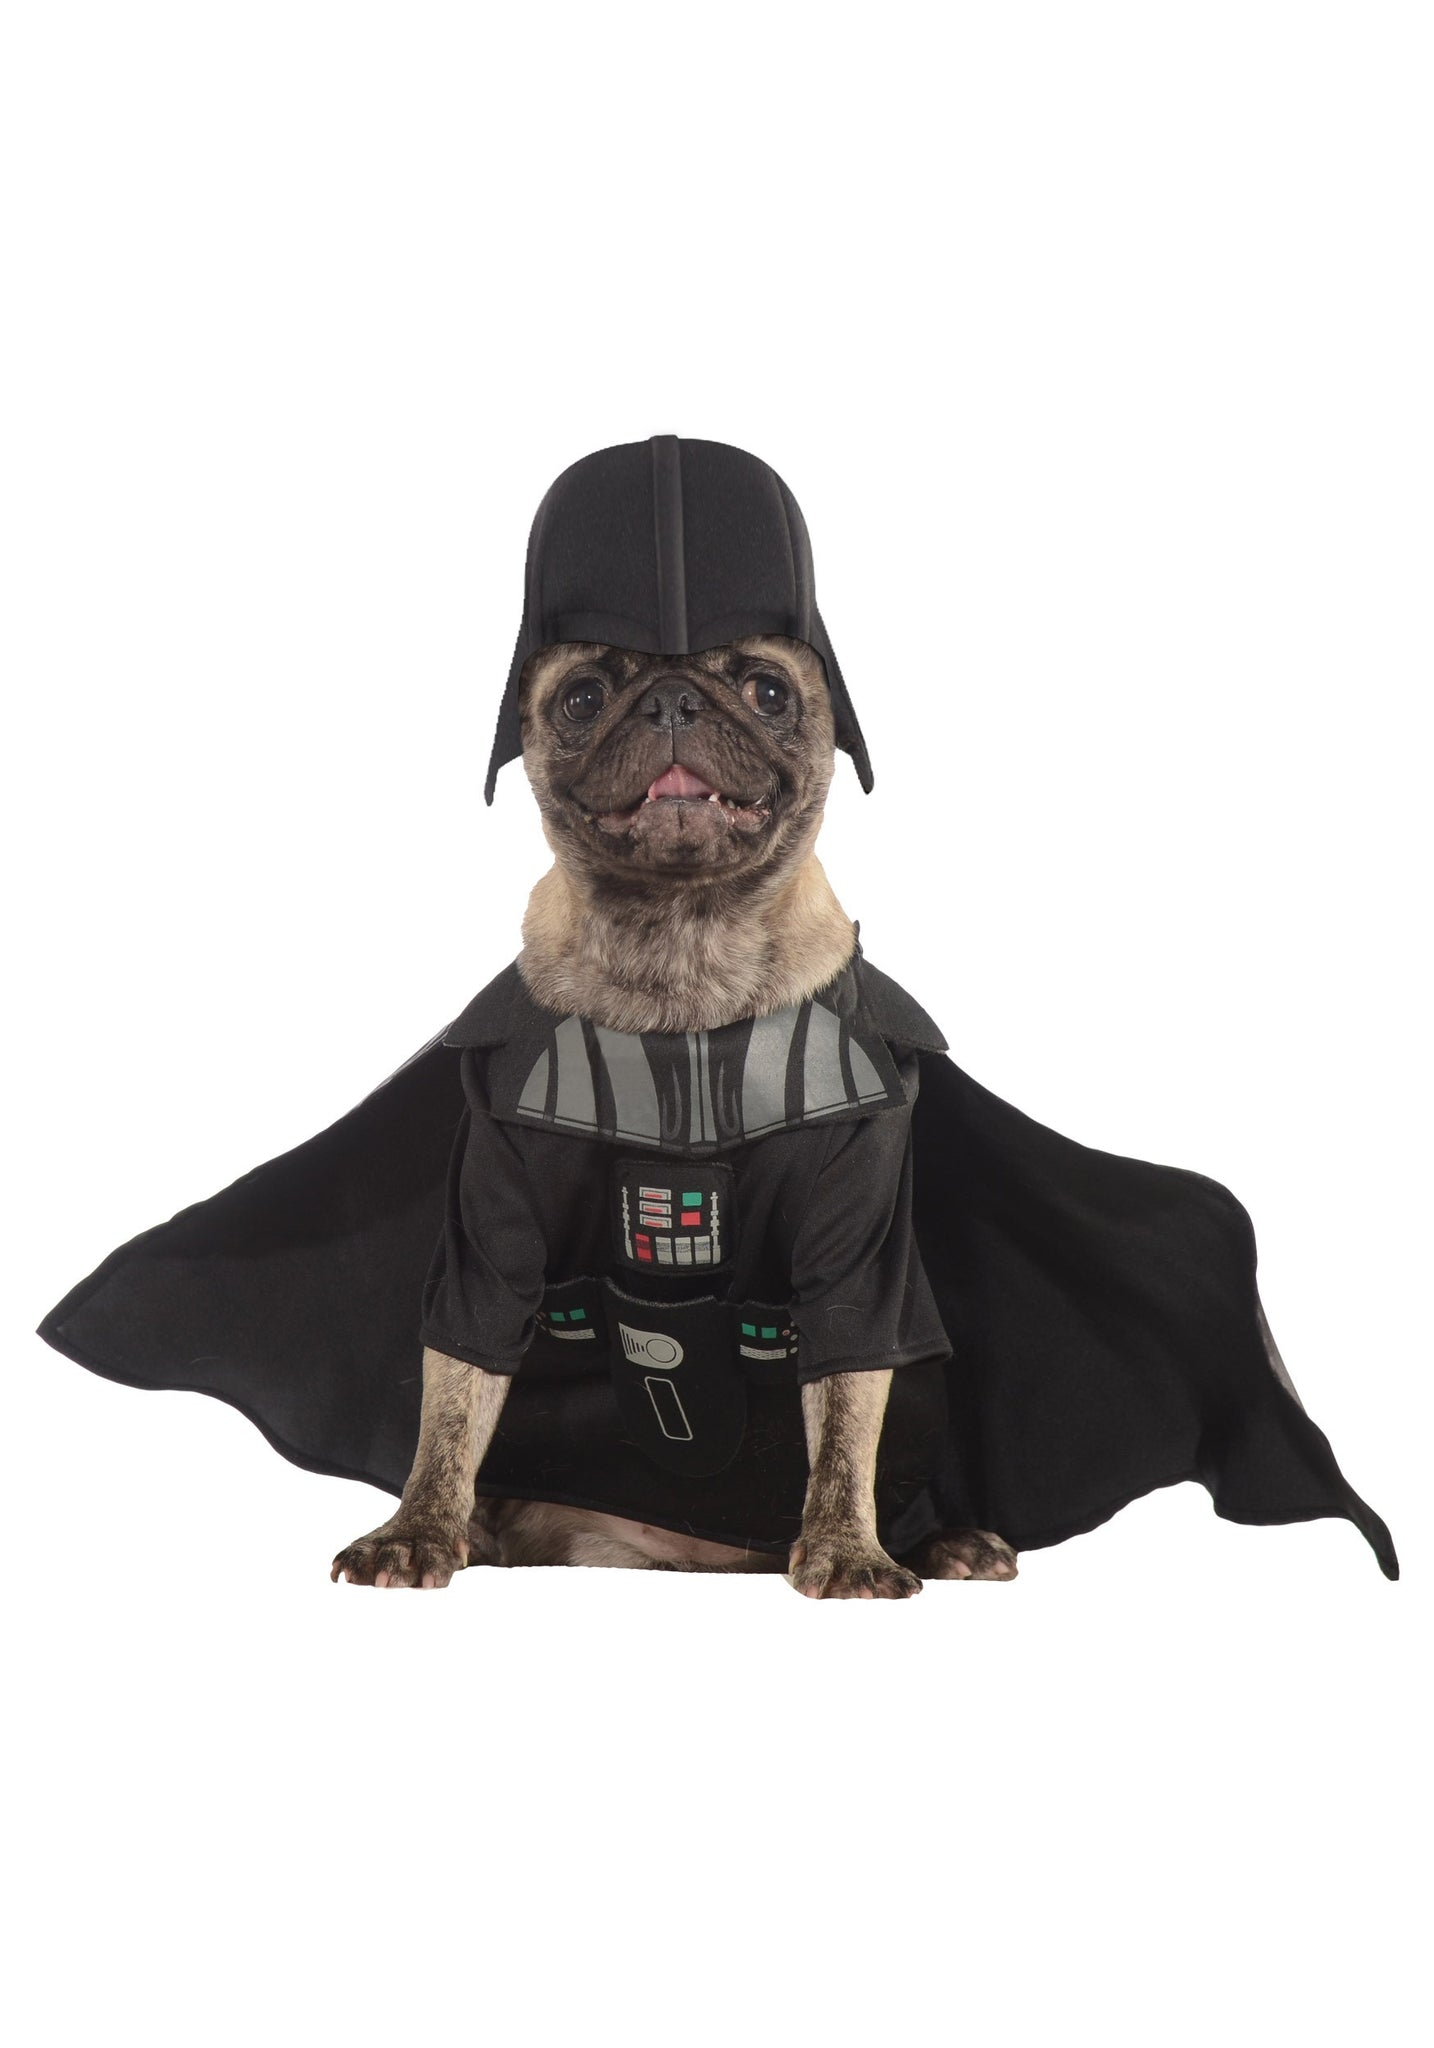 DARTH VADER DELUXE PET COSTUME  - SIZE M